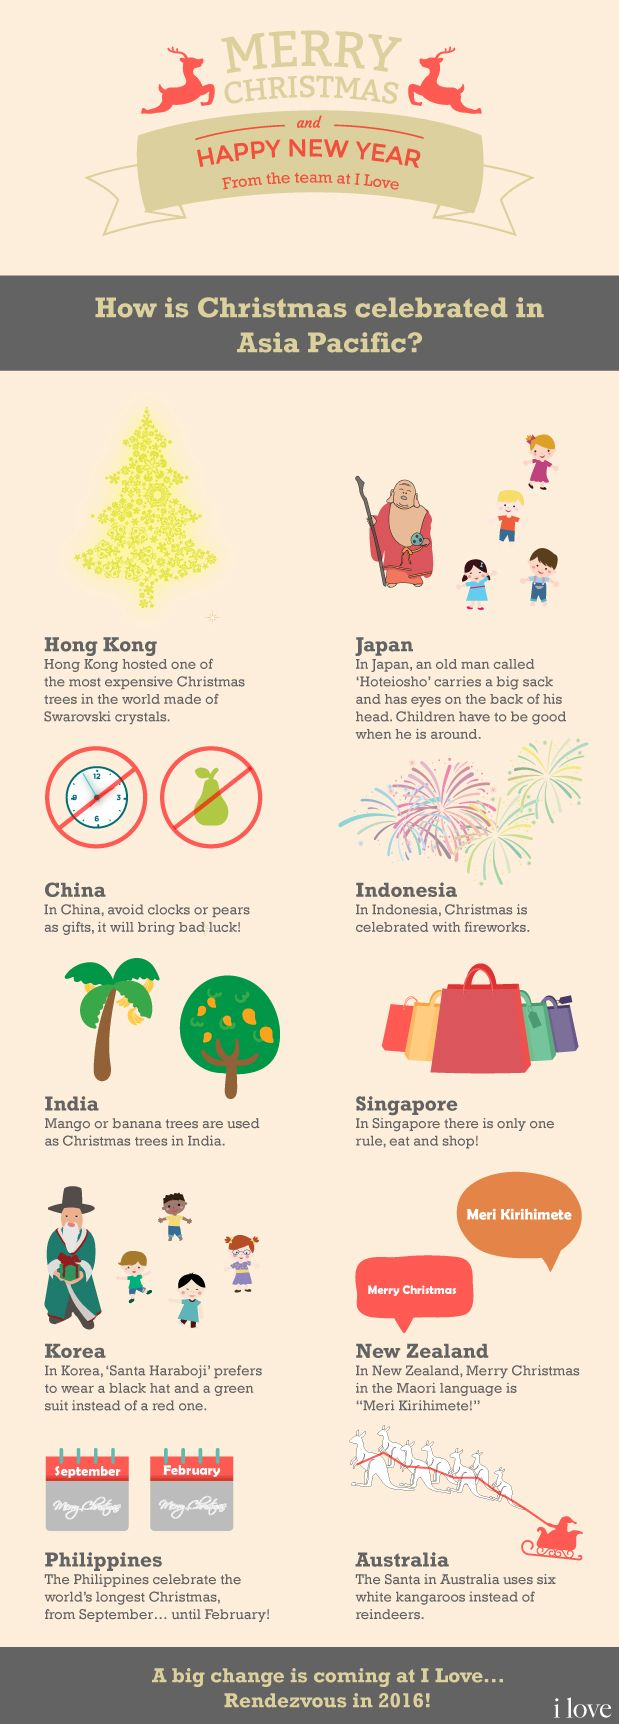 How is Christmas celebrated in Asia Pacific? #Infographic